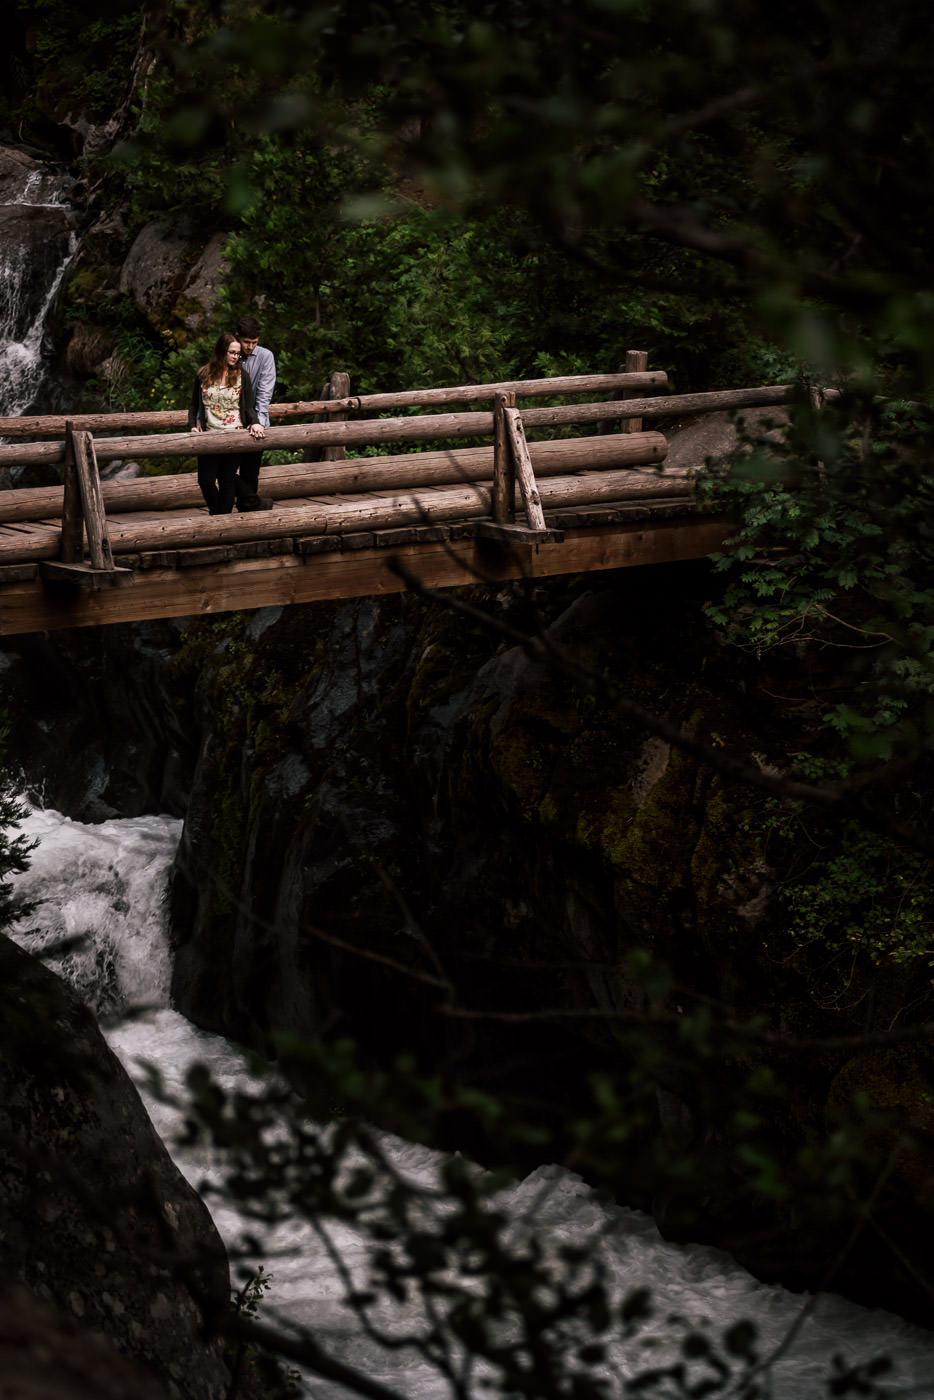 An old wooden bridge spanning the churning water of the river below makes the perfect setting for a romantic engagement photo in Sequoia National Park